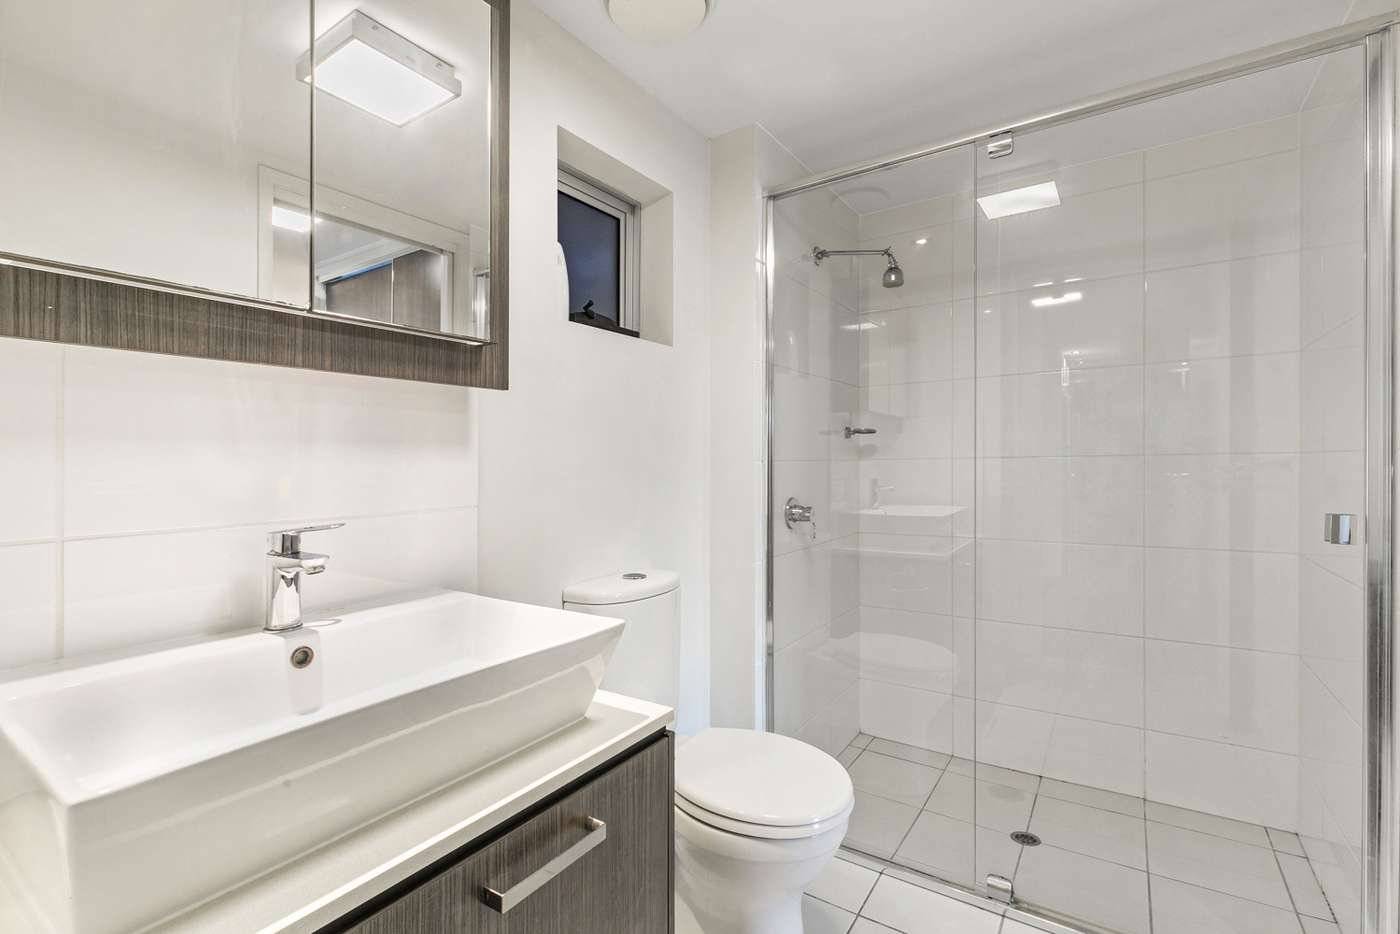 Fifth view of Homely unit listing, 16/18 Gailey Road, St Lucia QLD 4067